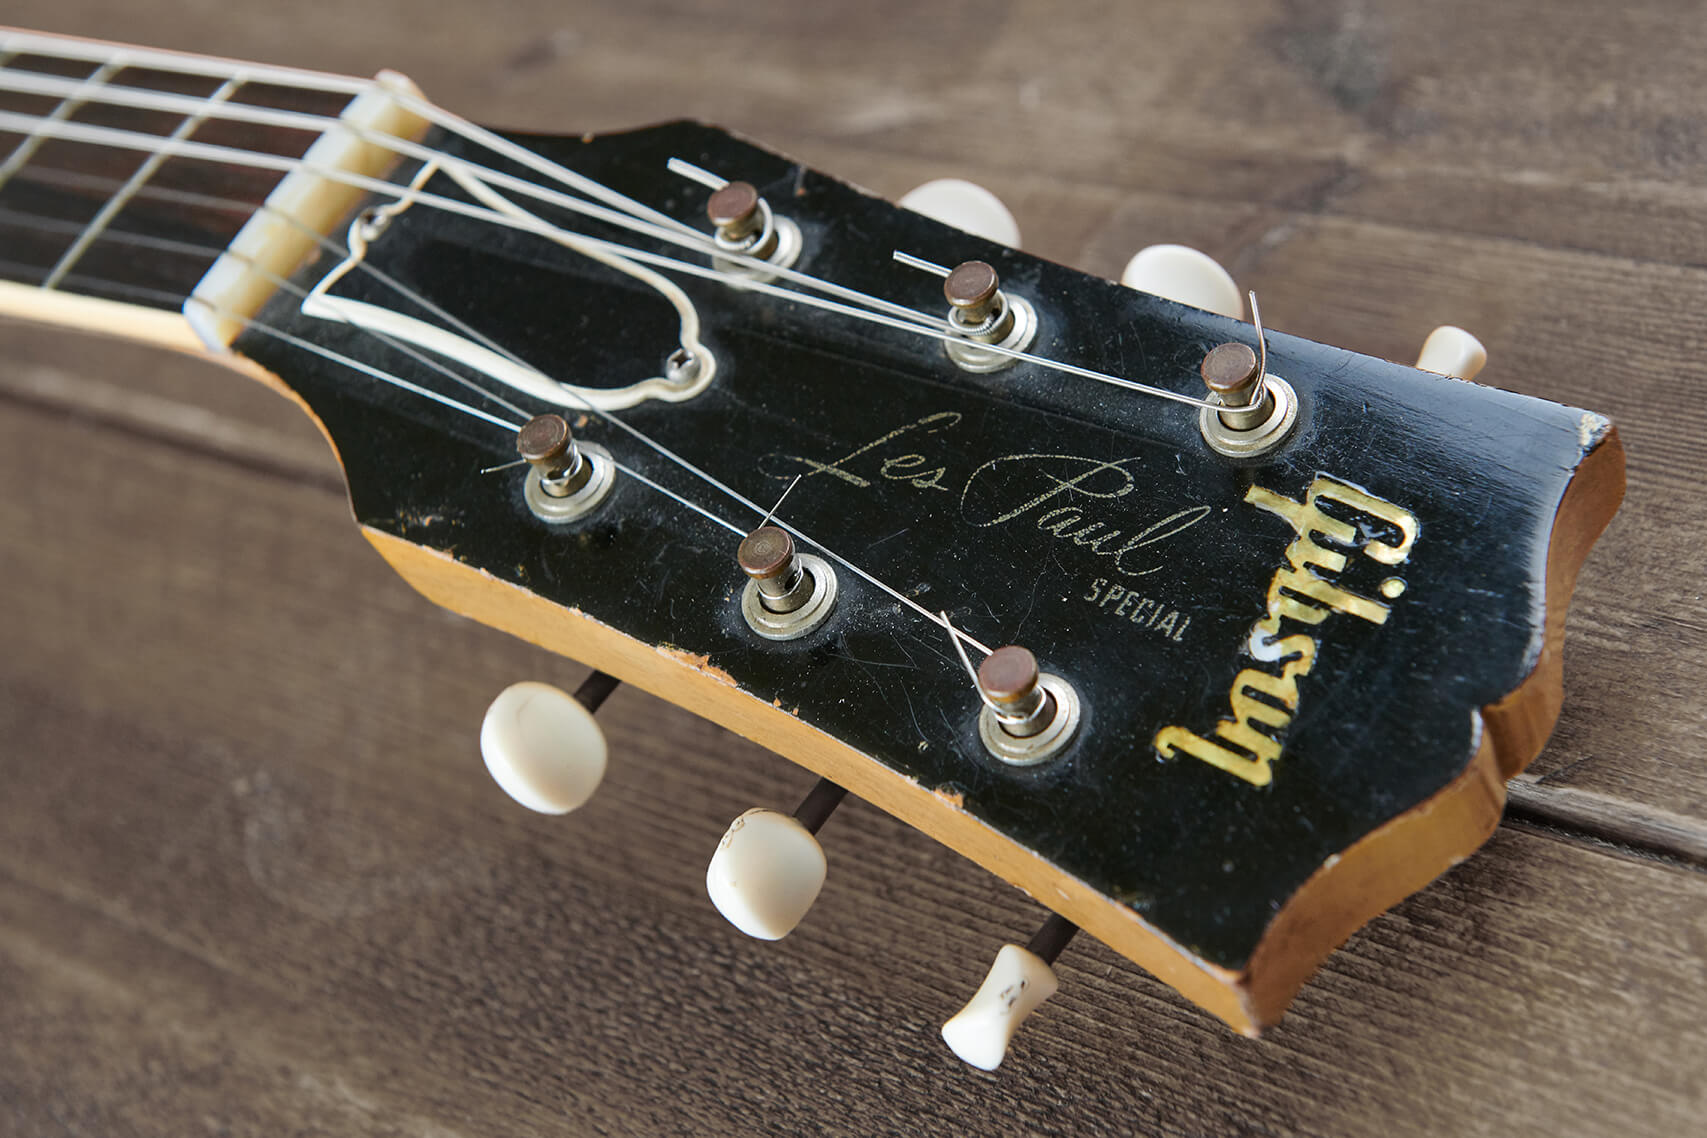 Gibson Les Paul TV Special Headstock